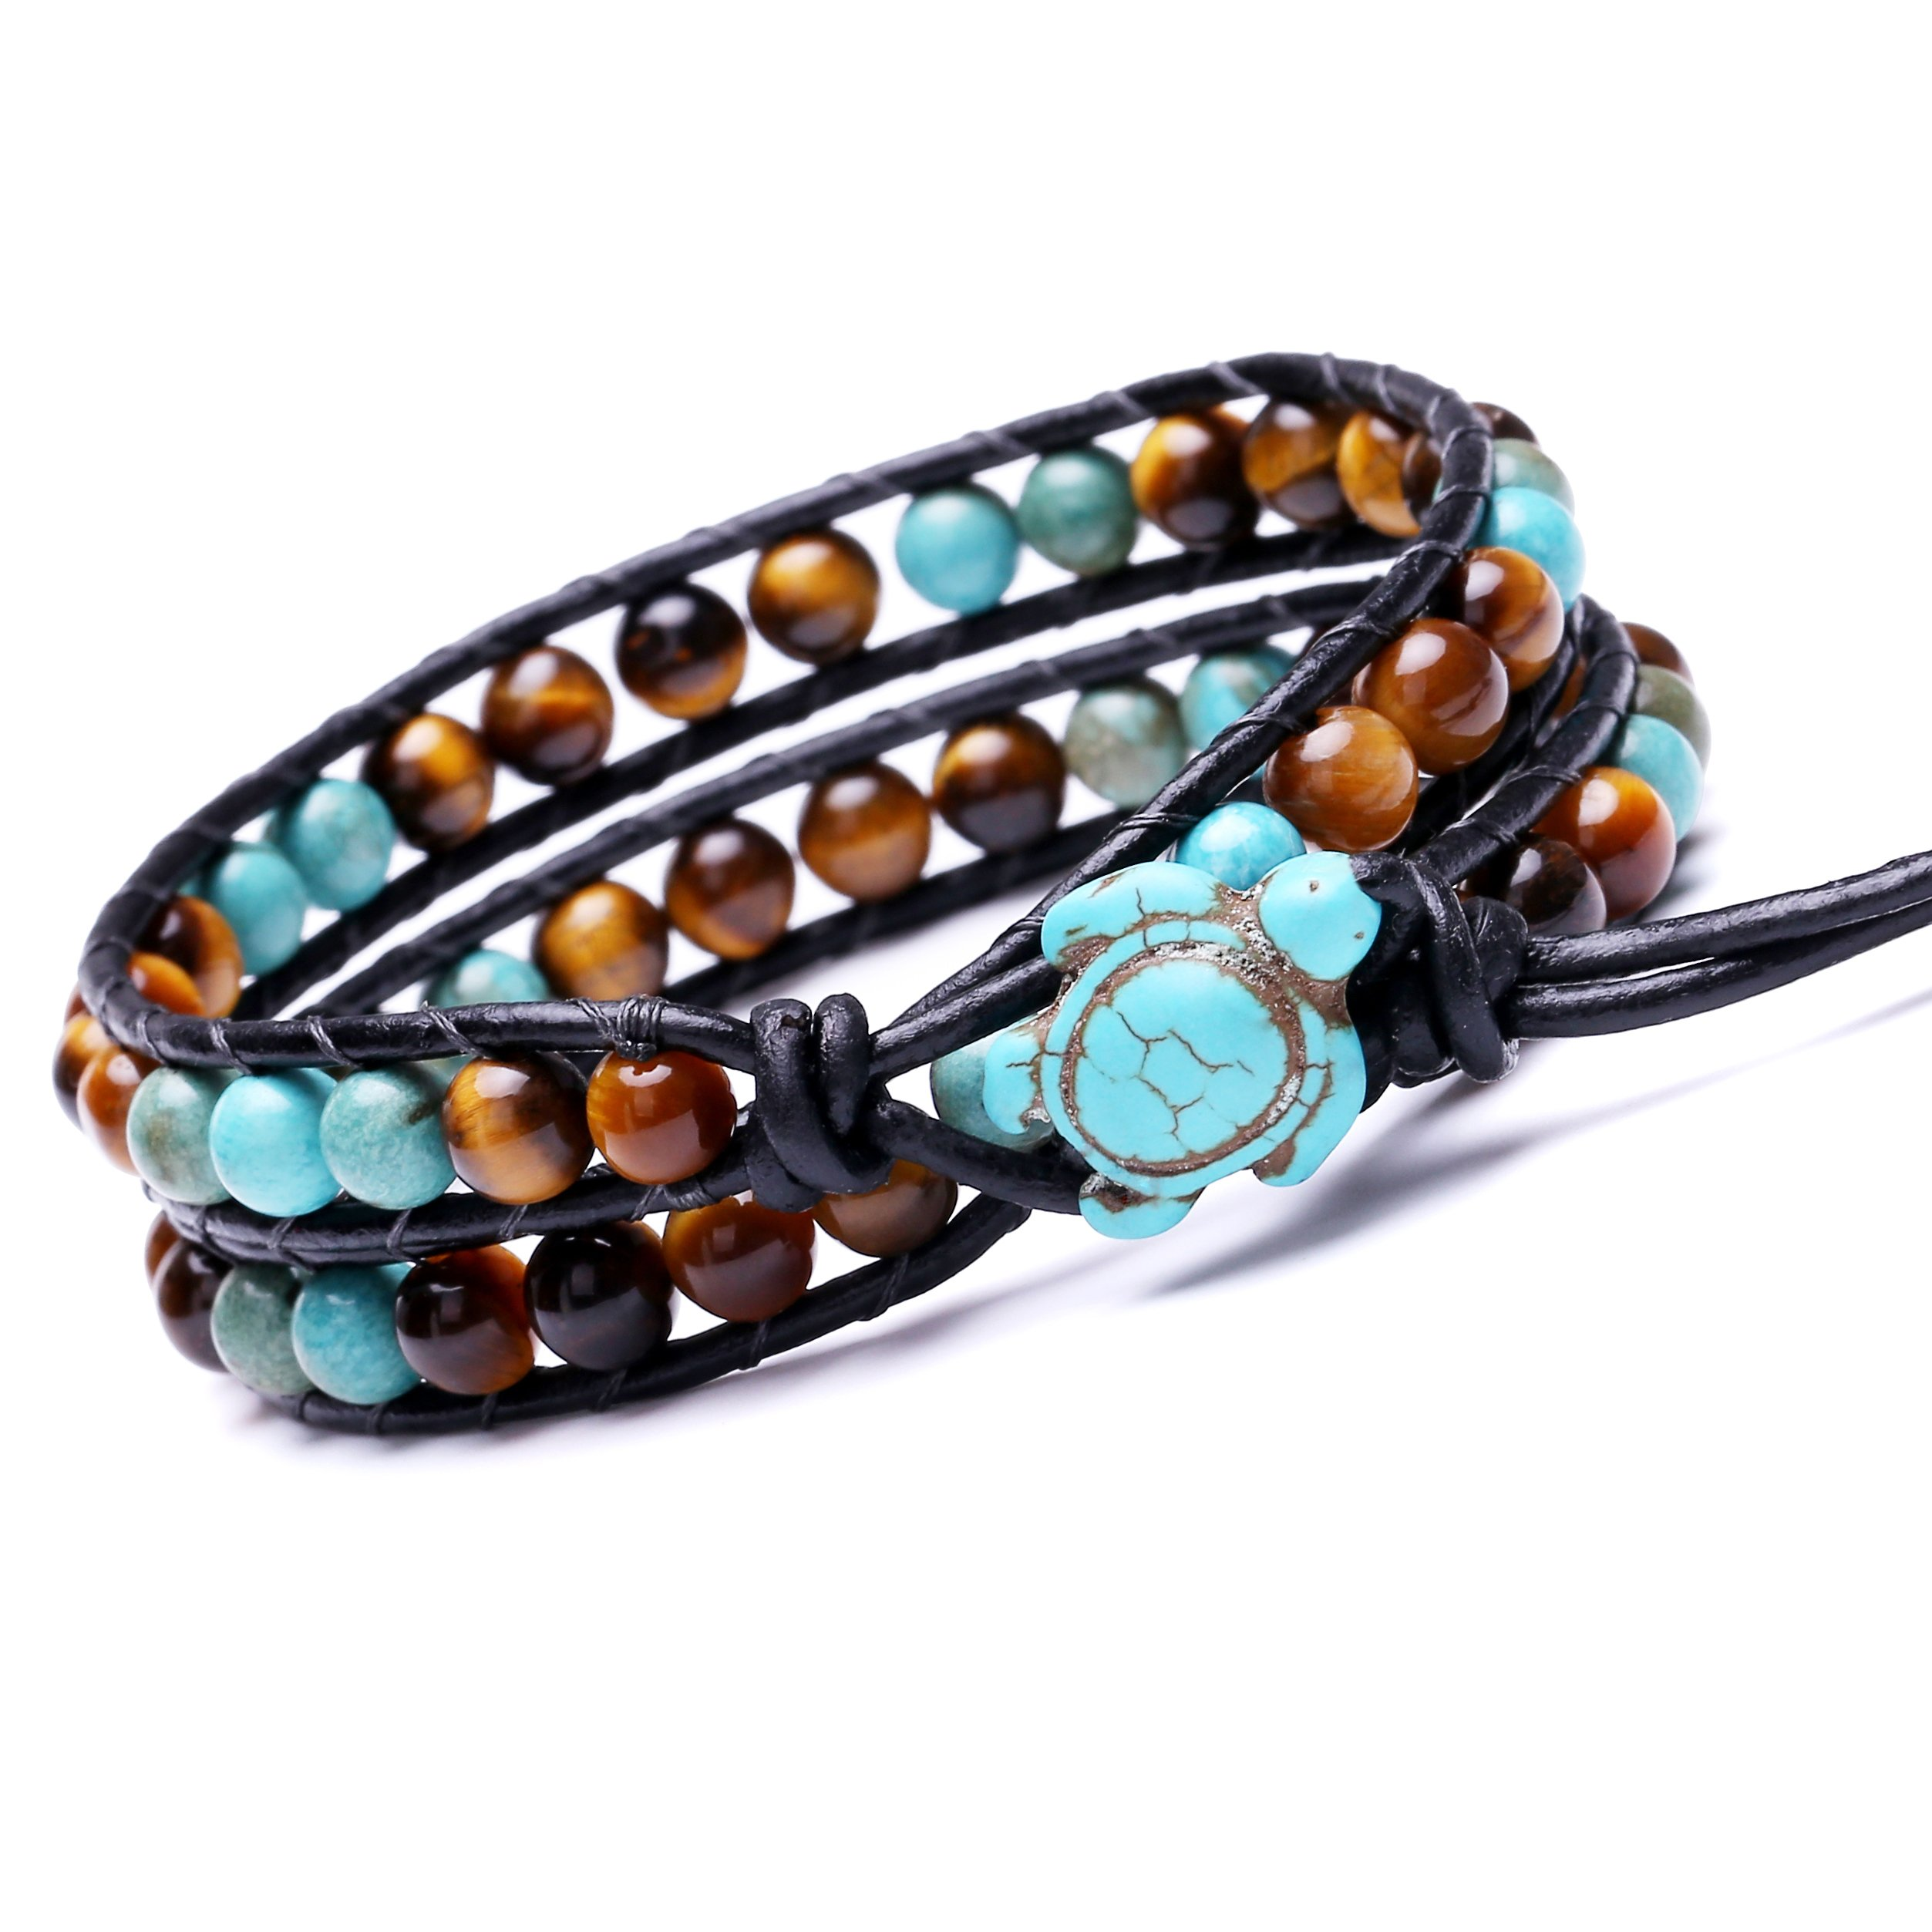 Leather Wrap Bracelet Turtle Turquoise and Tiger Eye Beads Handmade Boho Jewelry Mother's Day Gift by PearlyPearls